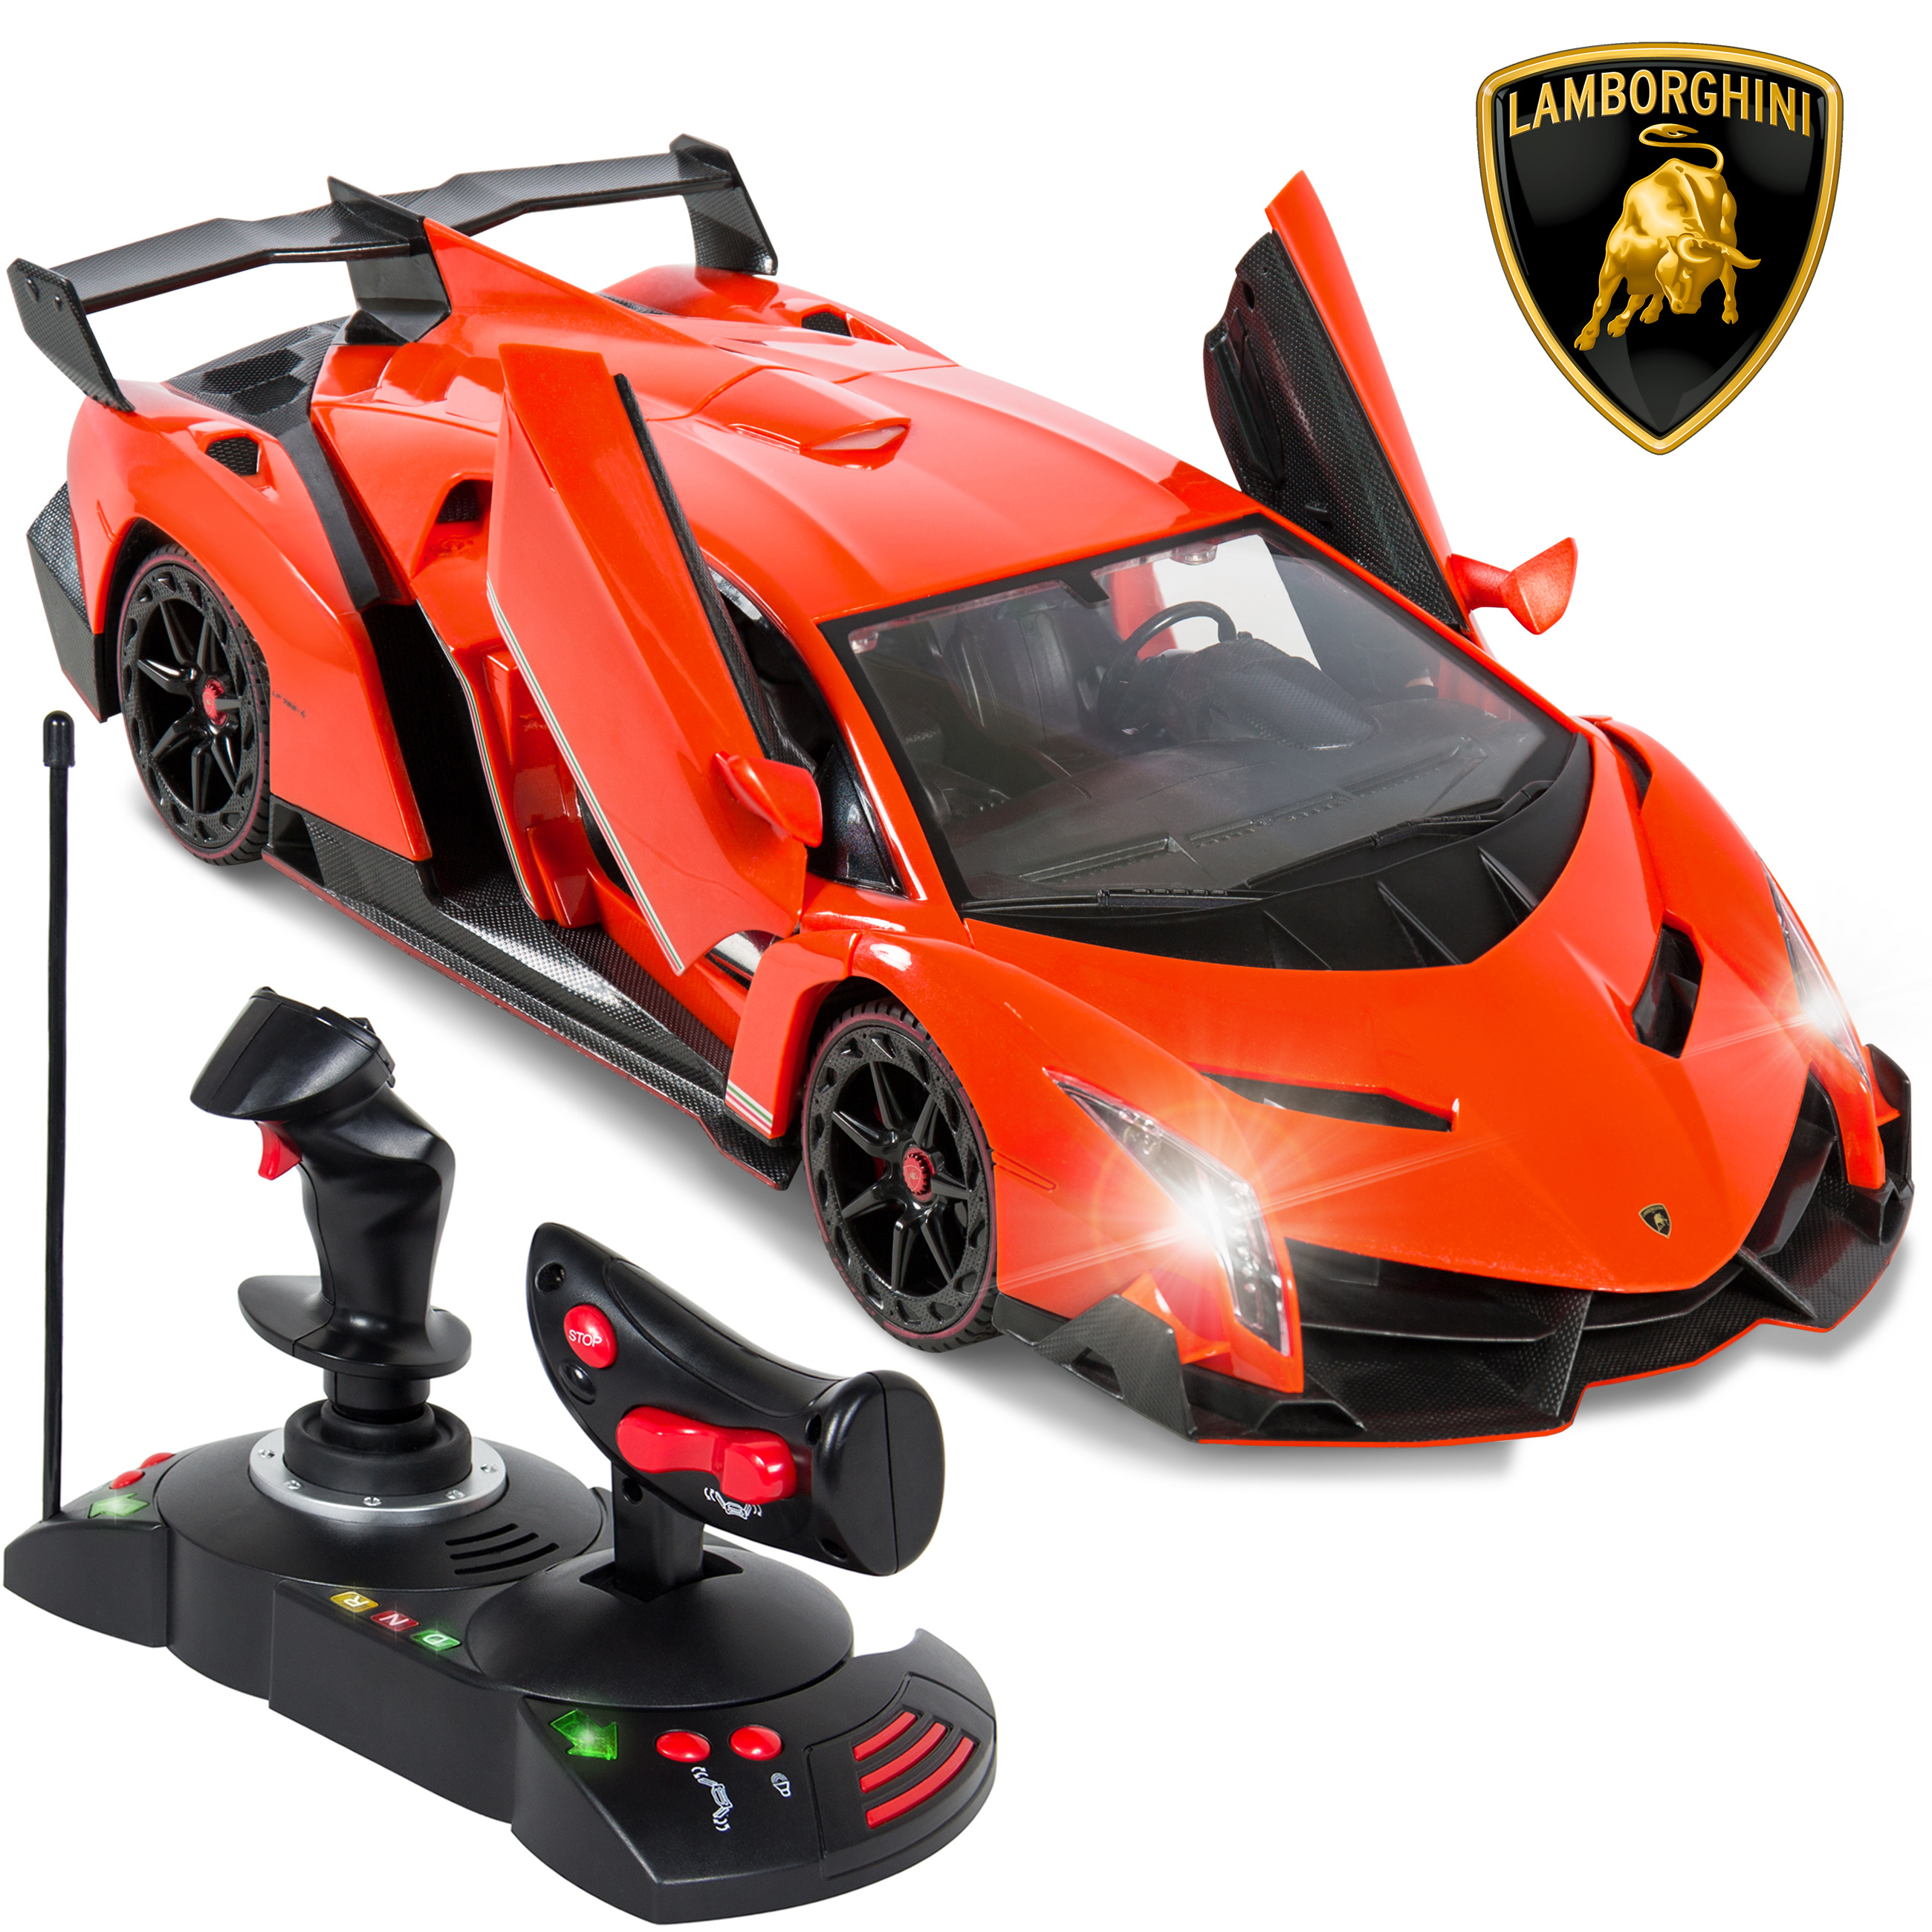 Best Choice Products 1/14 Scale RC Lamborghini Veneno Gravity Sensor Radio Remote Control Car (Orange)